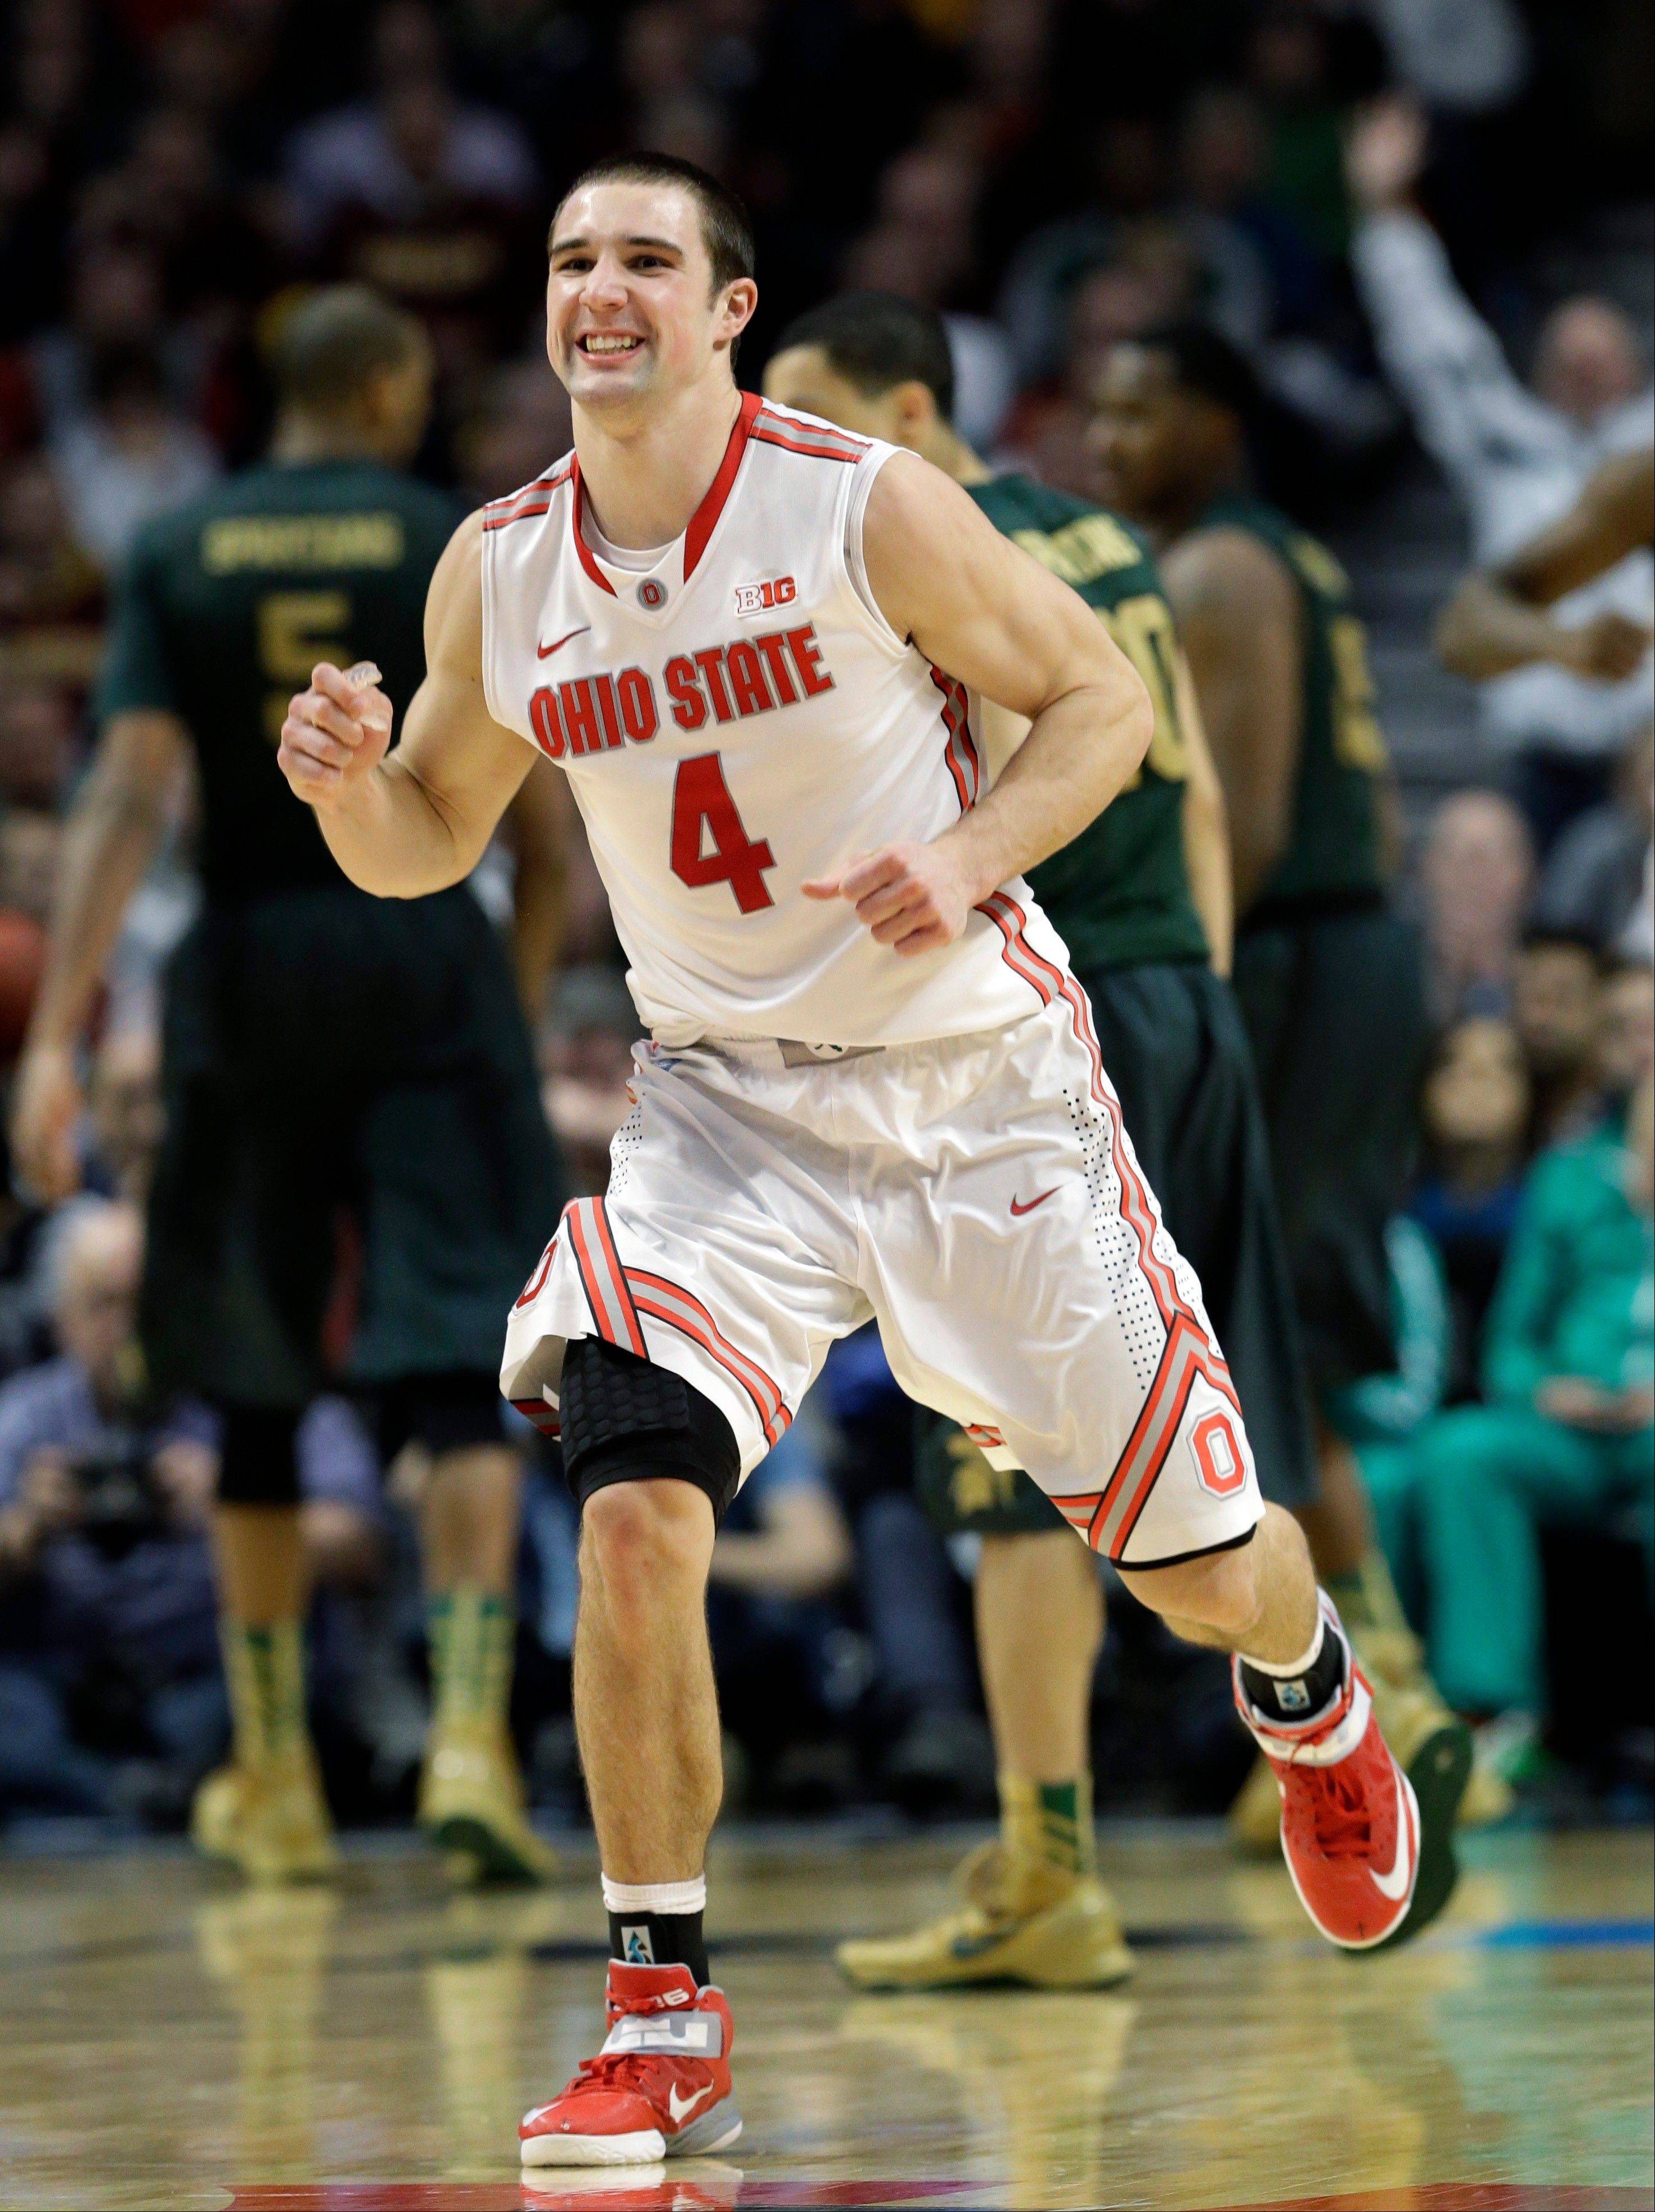 Ohio State's Aaron Craft reacts during the second half of an NCAA college basketball game against Michigan State at the Big Ten tournament Saturday, March 16, 2013, in Chicago. Ohio State won 61-58.